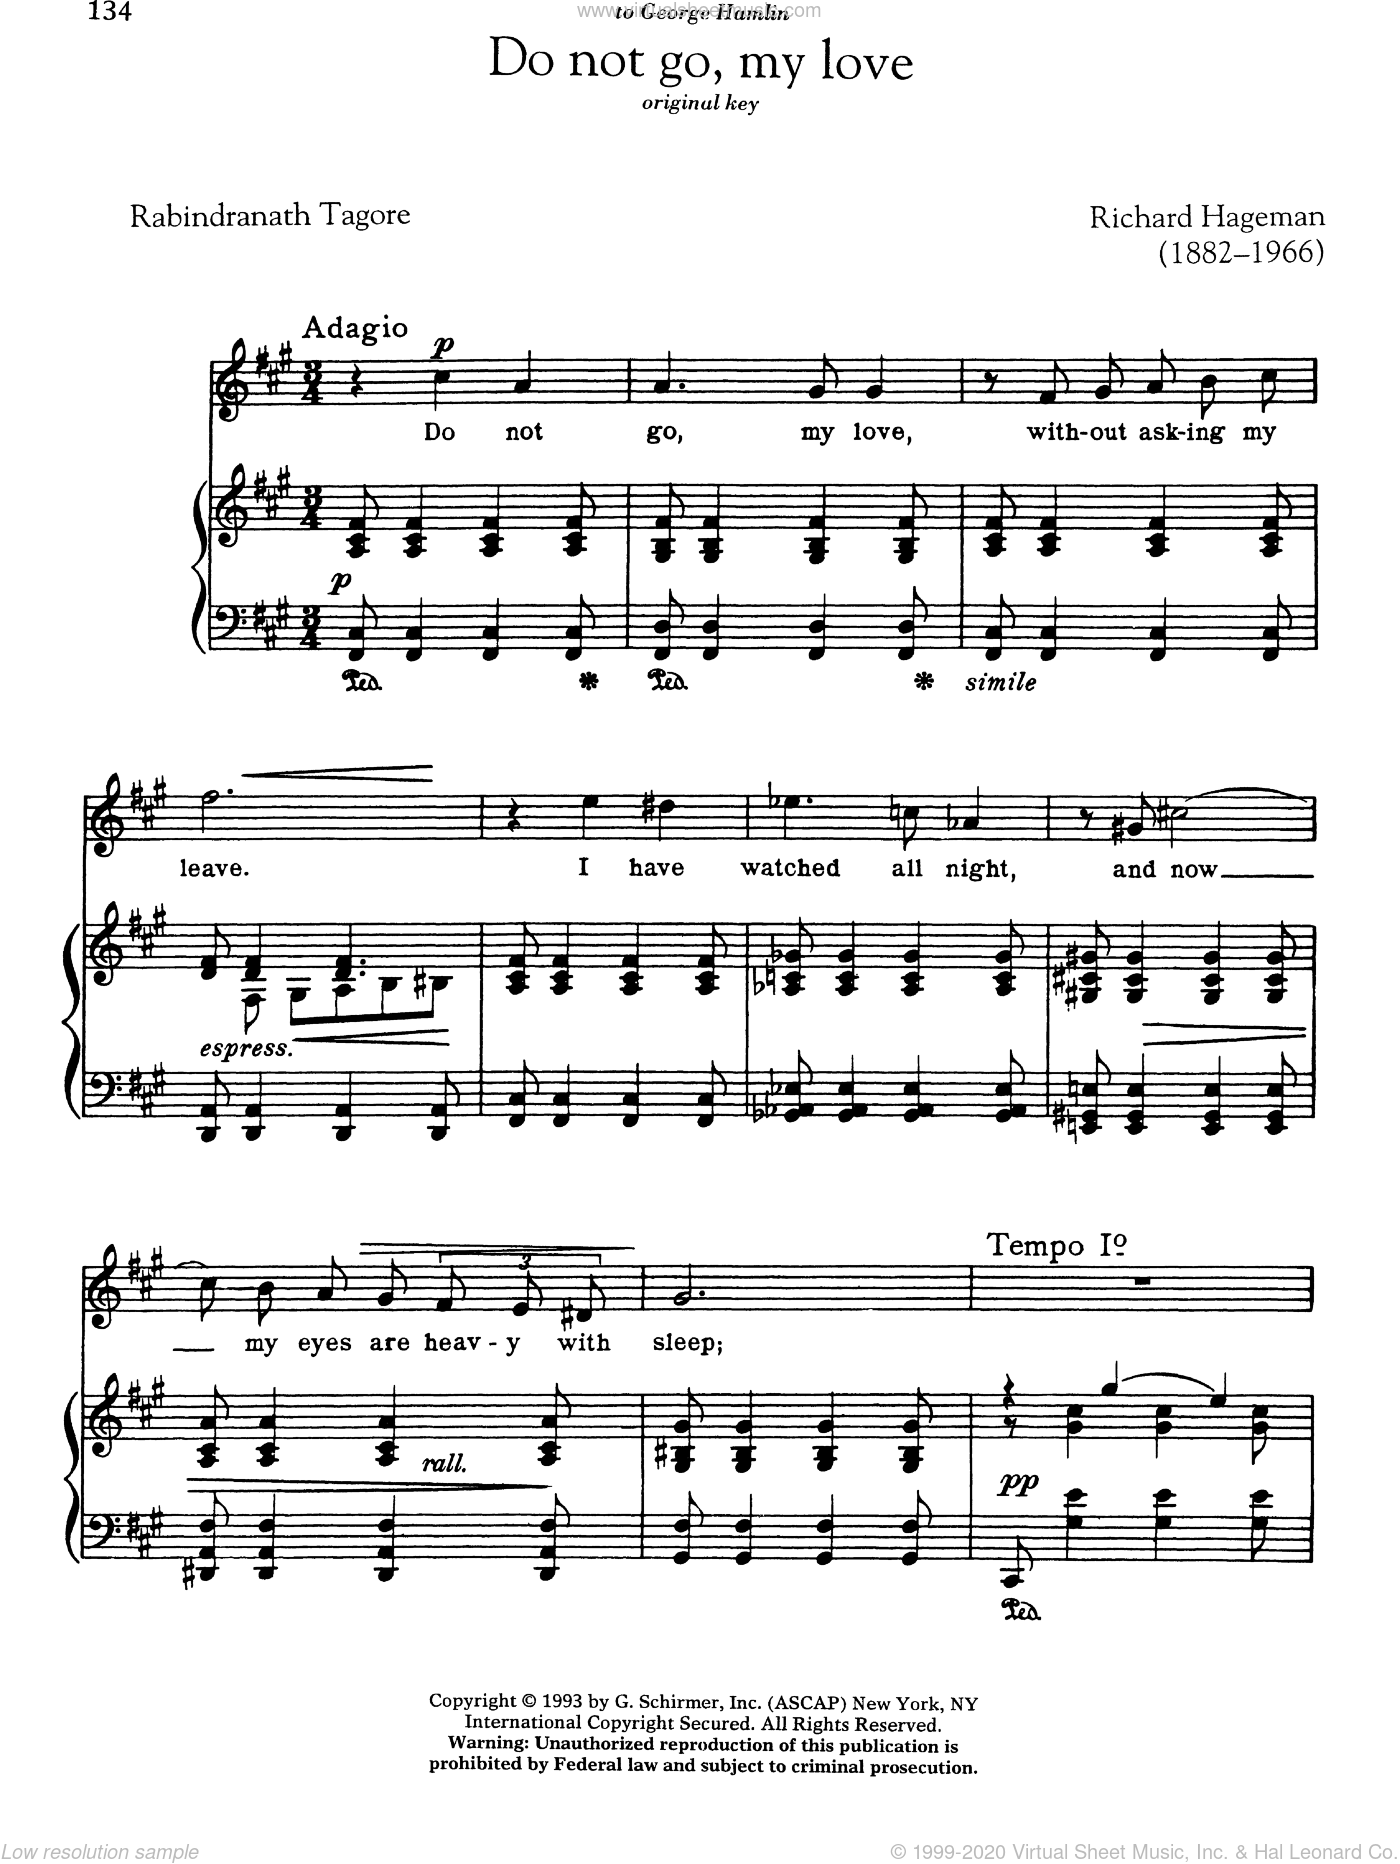 Do Not Go, My Love sheet music for voice and piano (High ) by Richard Hageman and Rabindranath Tagore. Score Image Preview.